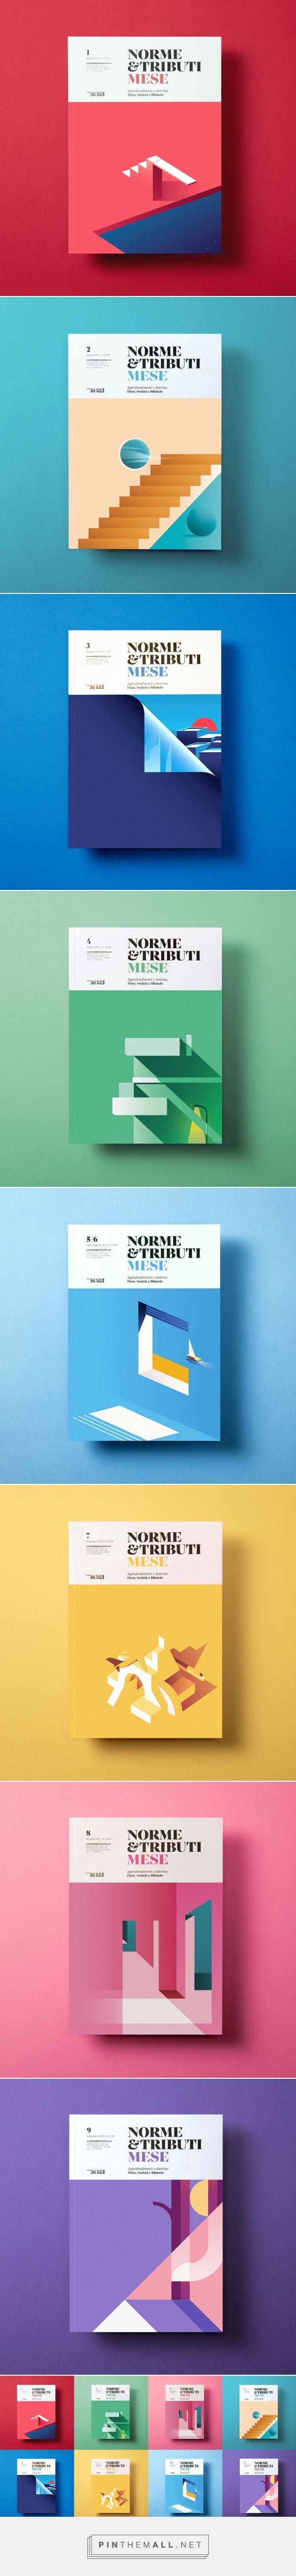 Norme & Tributi MESE - Il Sole 24 Ore by Ray Oranges